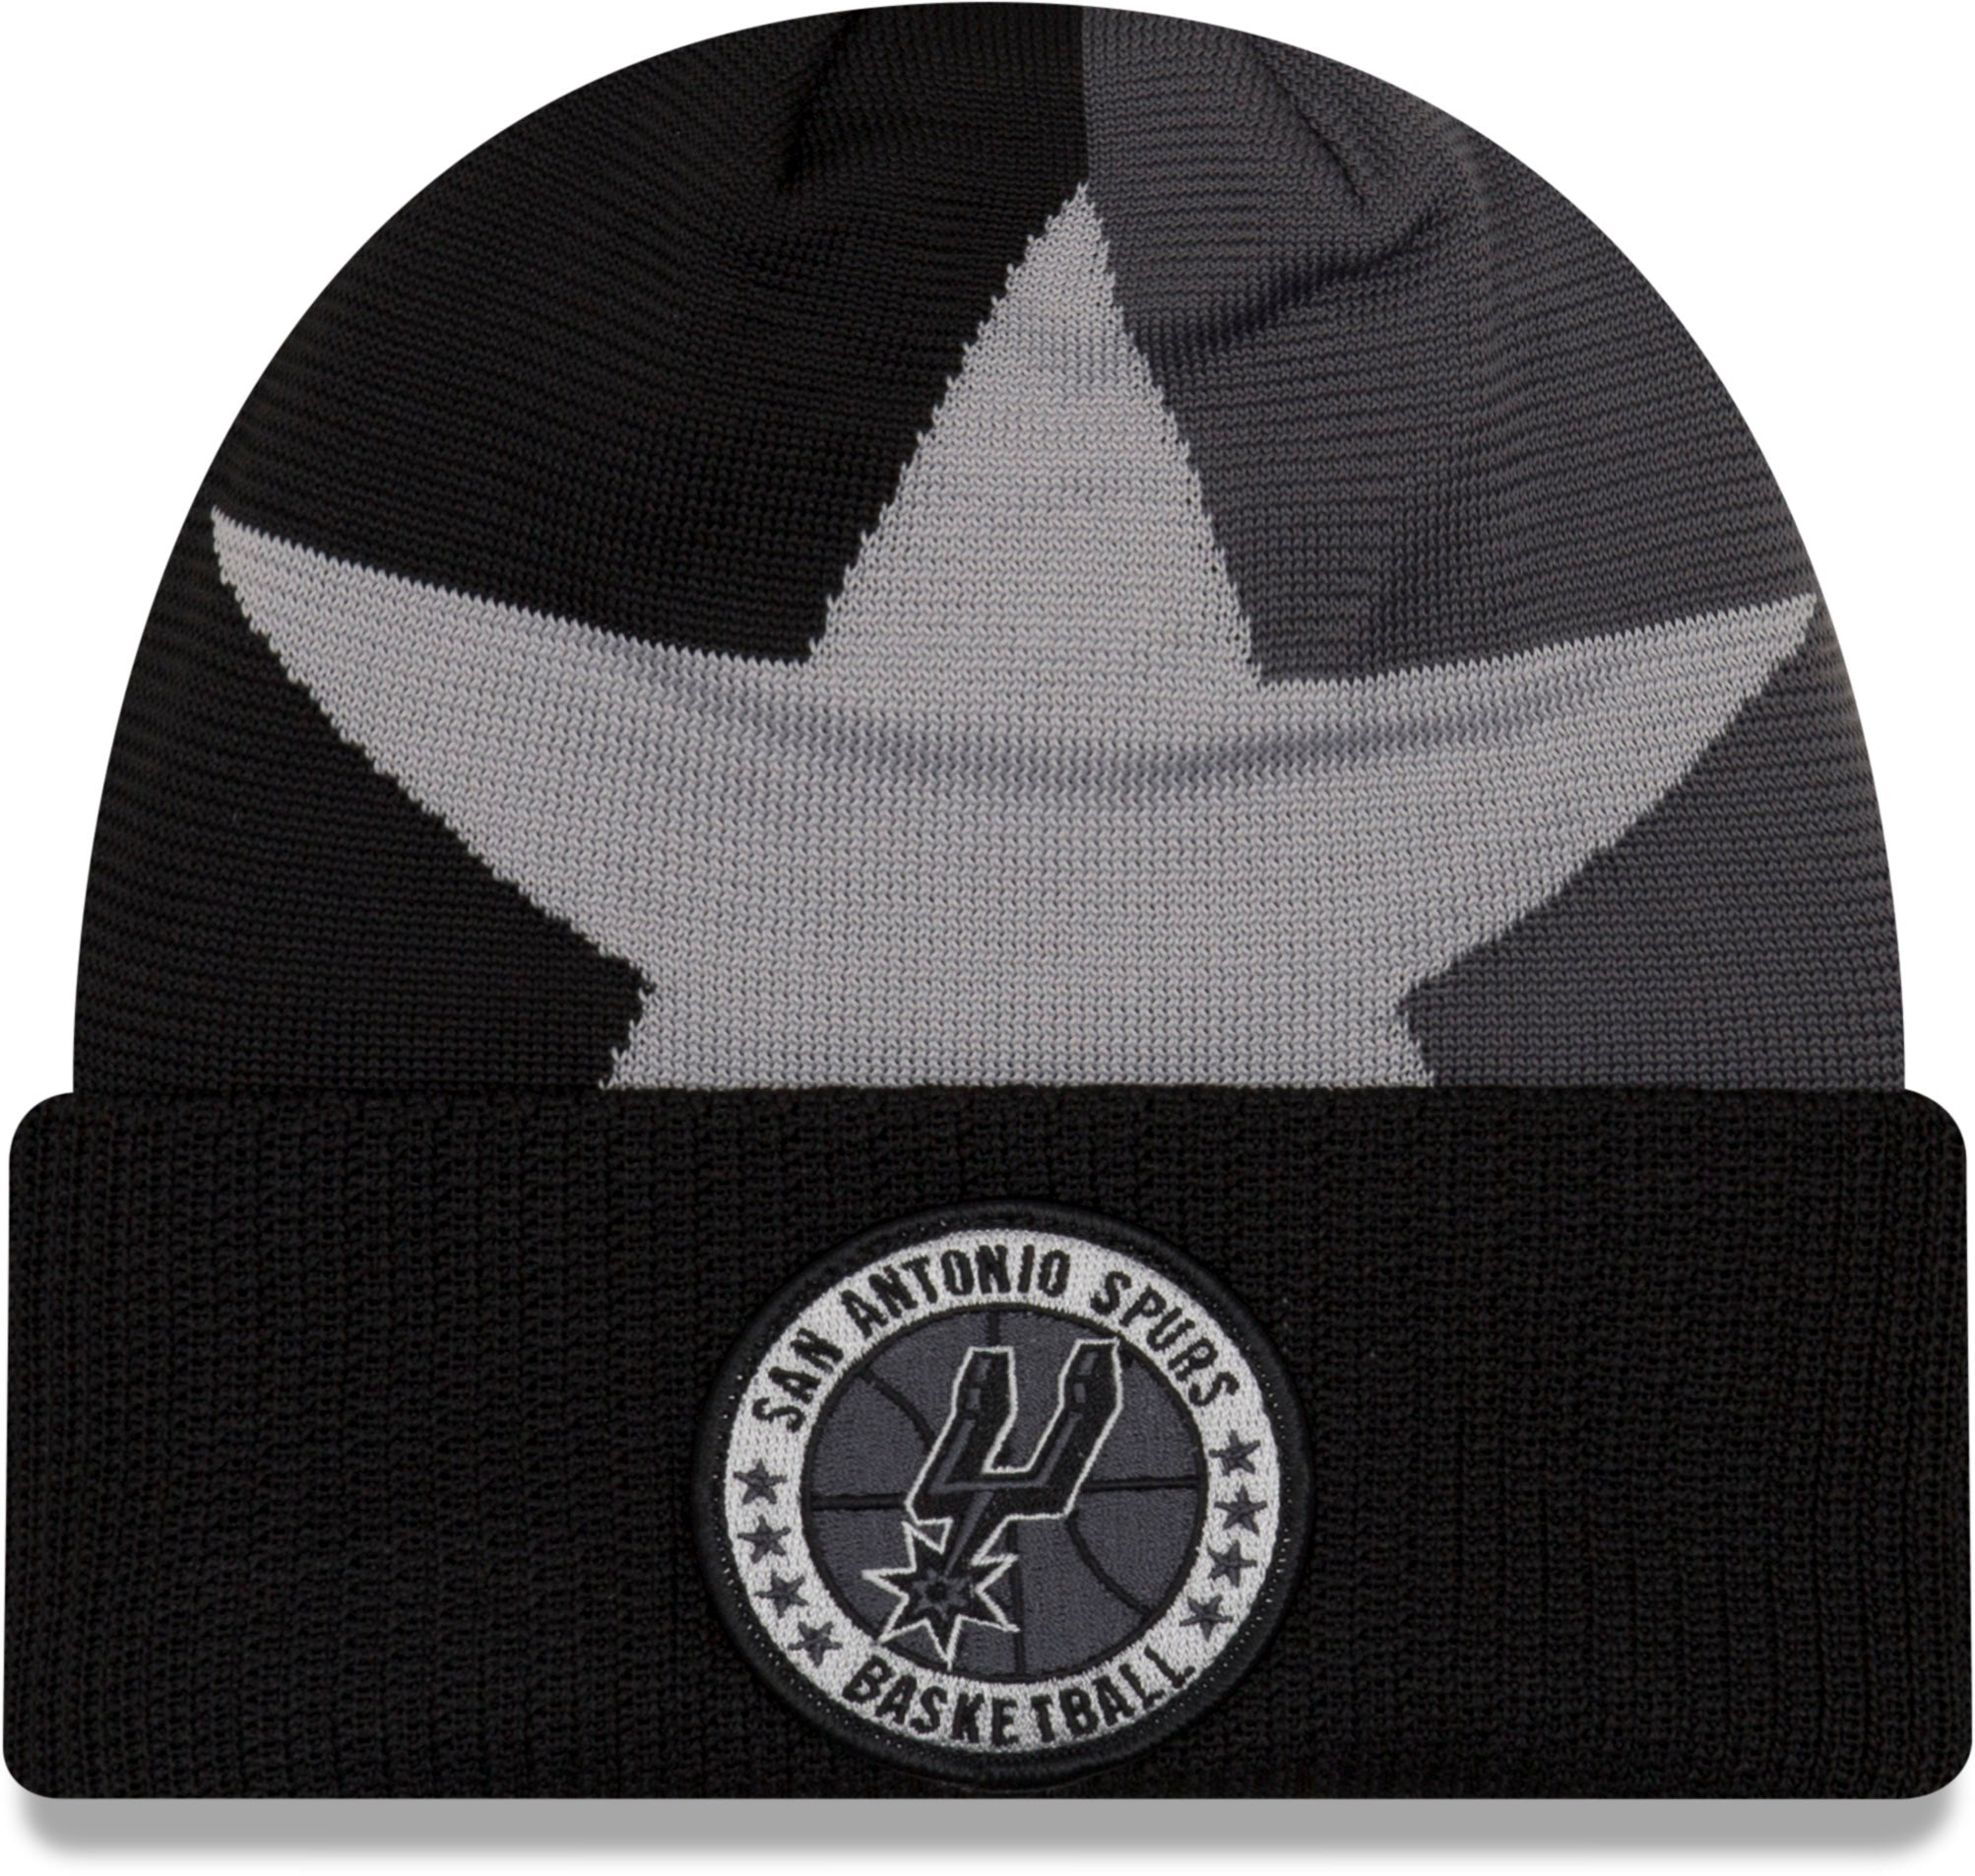 345199491c6 San Antonio Spurs NBA 2018 Tip Off Series New Era Knit Beanie – lovemycap